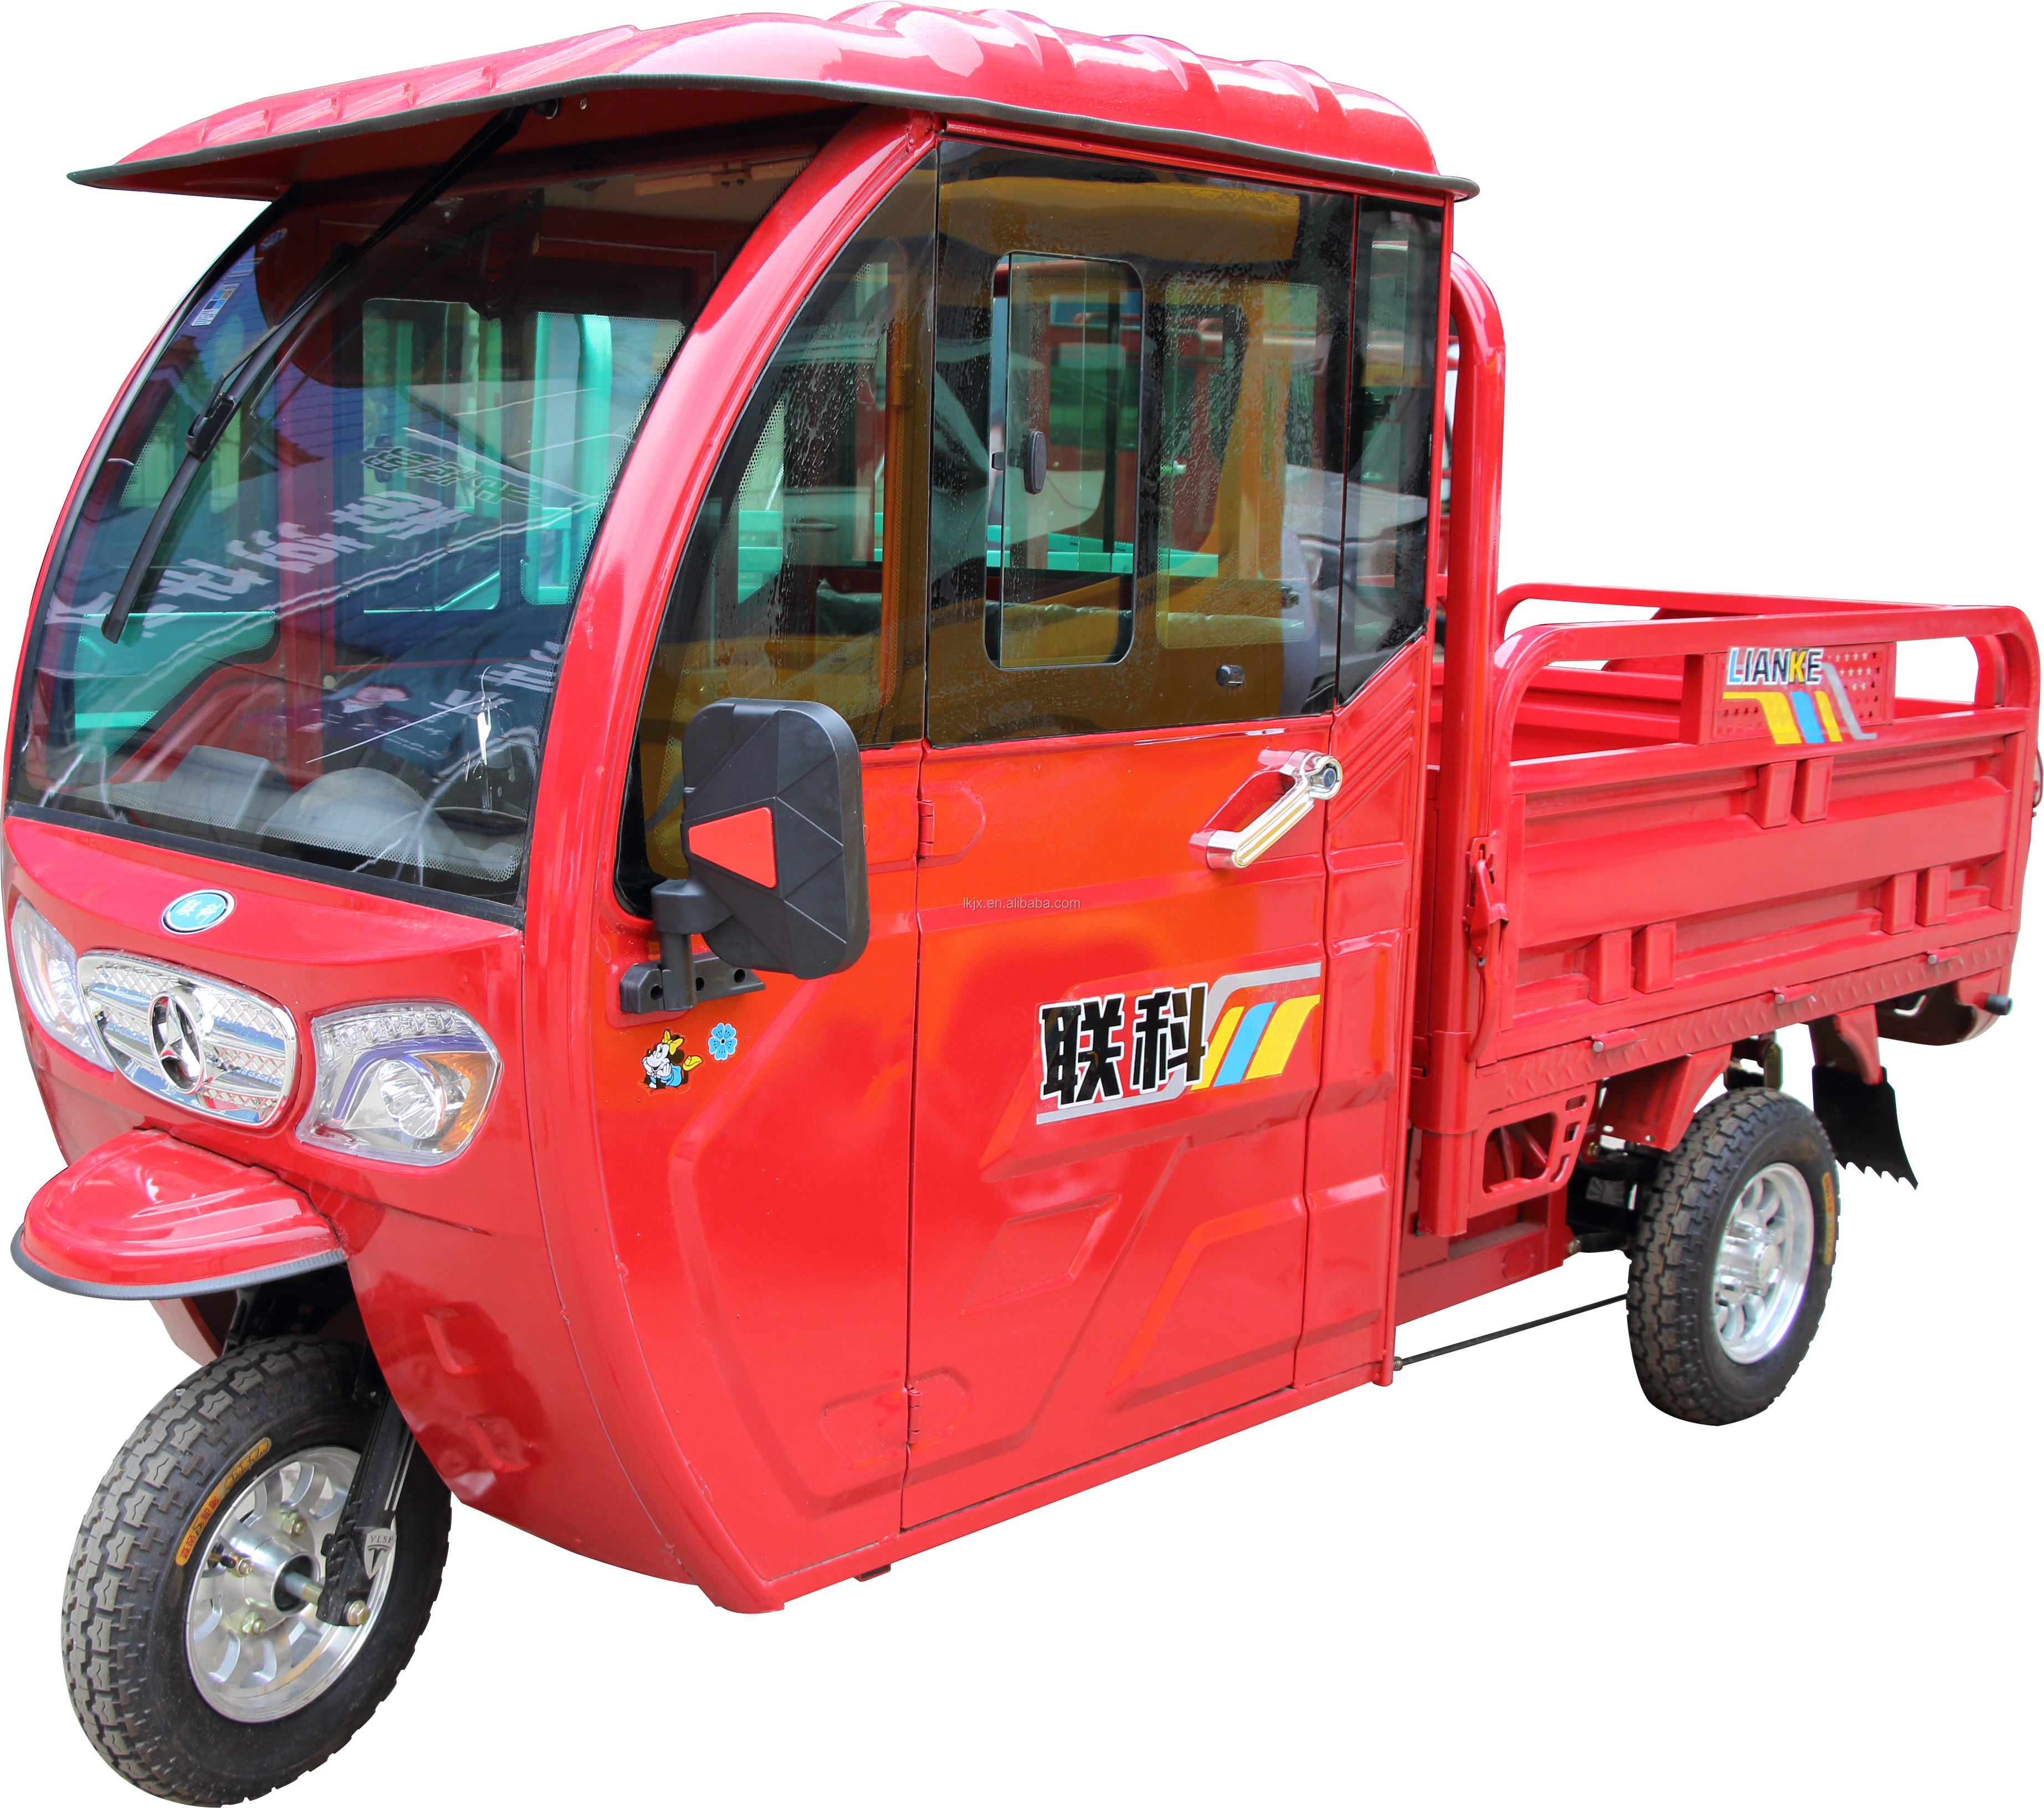 Lianke Electric Cargo Tricycle With Low Price Electric Bike 3 Wheel For Cargo Three Wheel Electric Motorcycle With Low Price Buy Electric Cargo Tricycle Electric Bike 3 Wheel For Cargo Three Wheel Electric Motorcycle Product